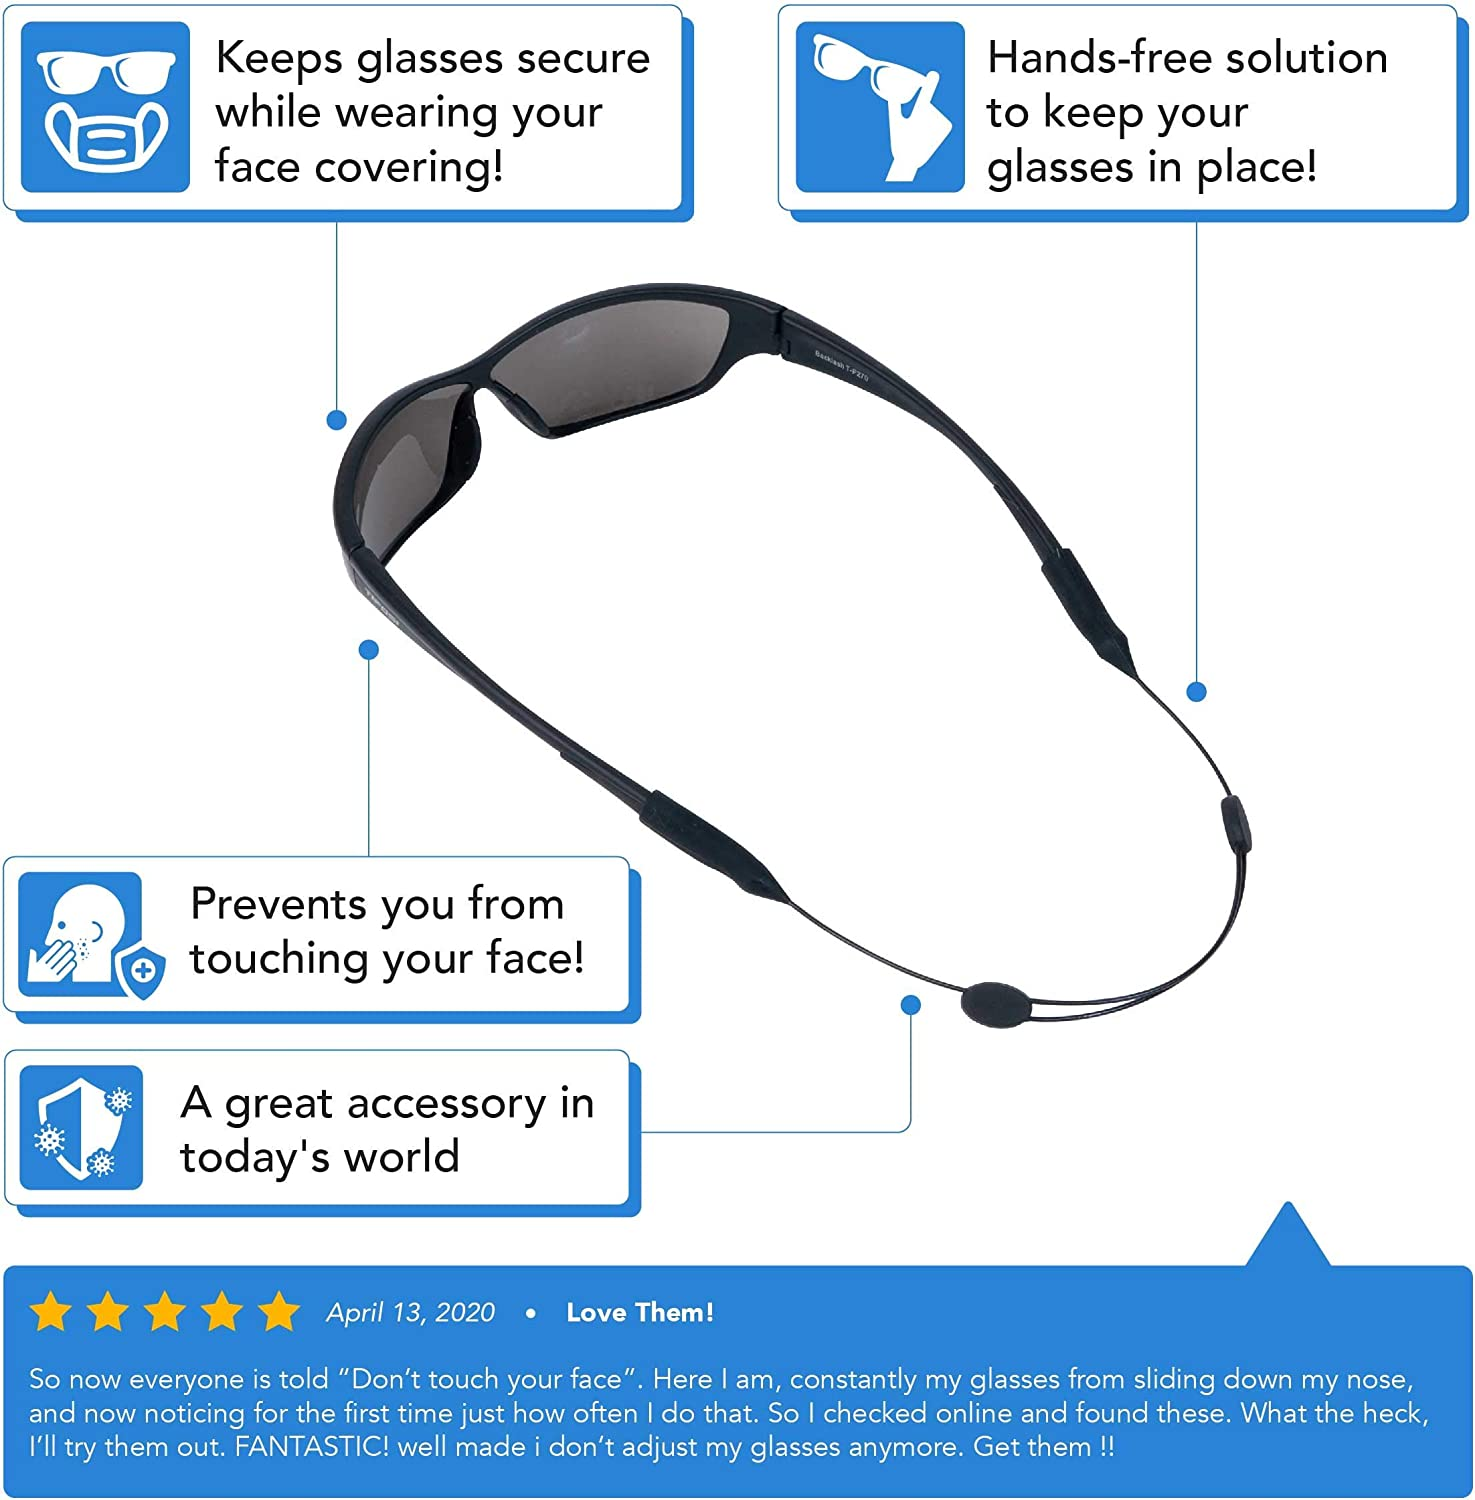 Adjustable Eyeglass Strap (5 Pack) - No Tail Sunglass Strap - Eyewear String Holder - With Bonus Glasses Cleaning Cloth - 5 Pack